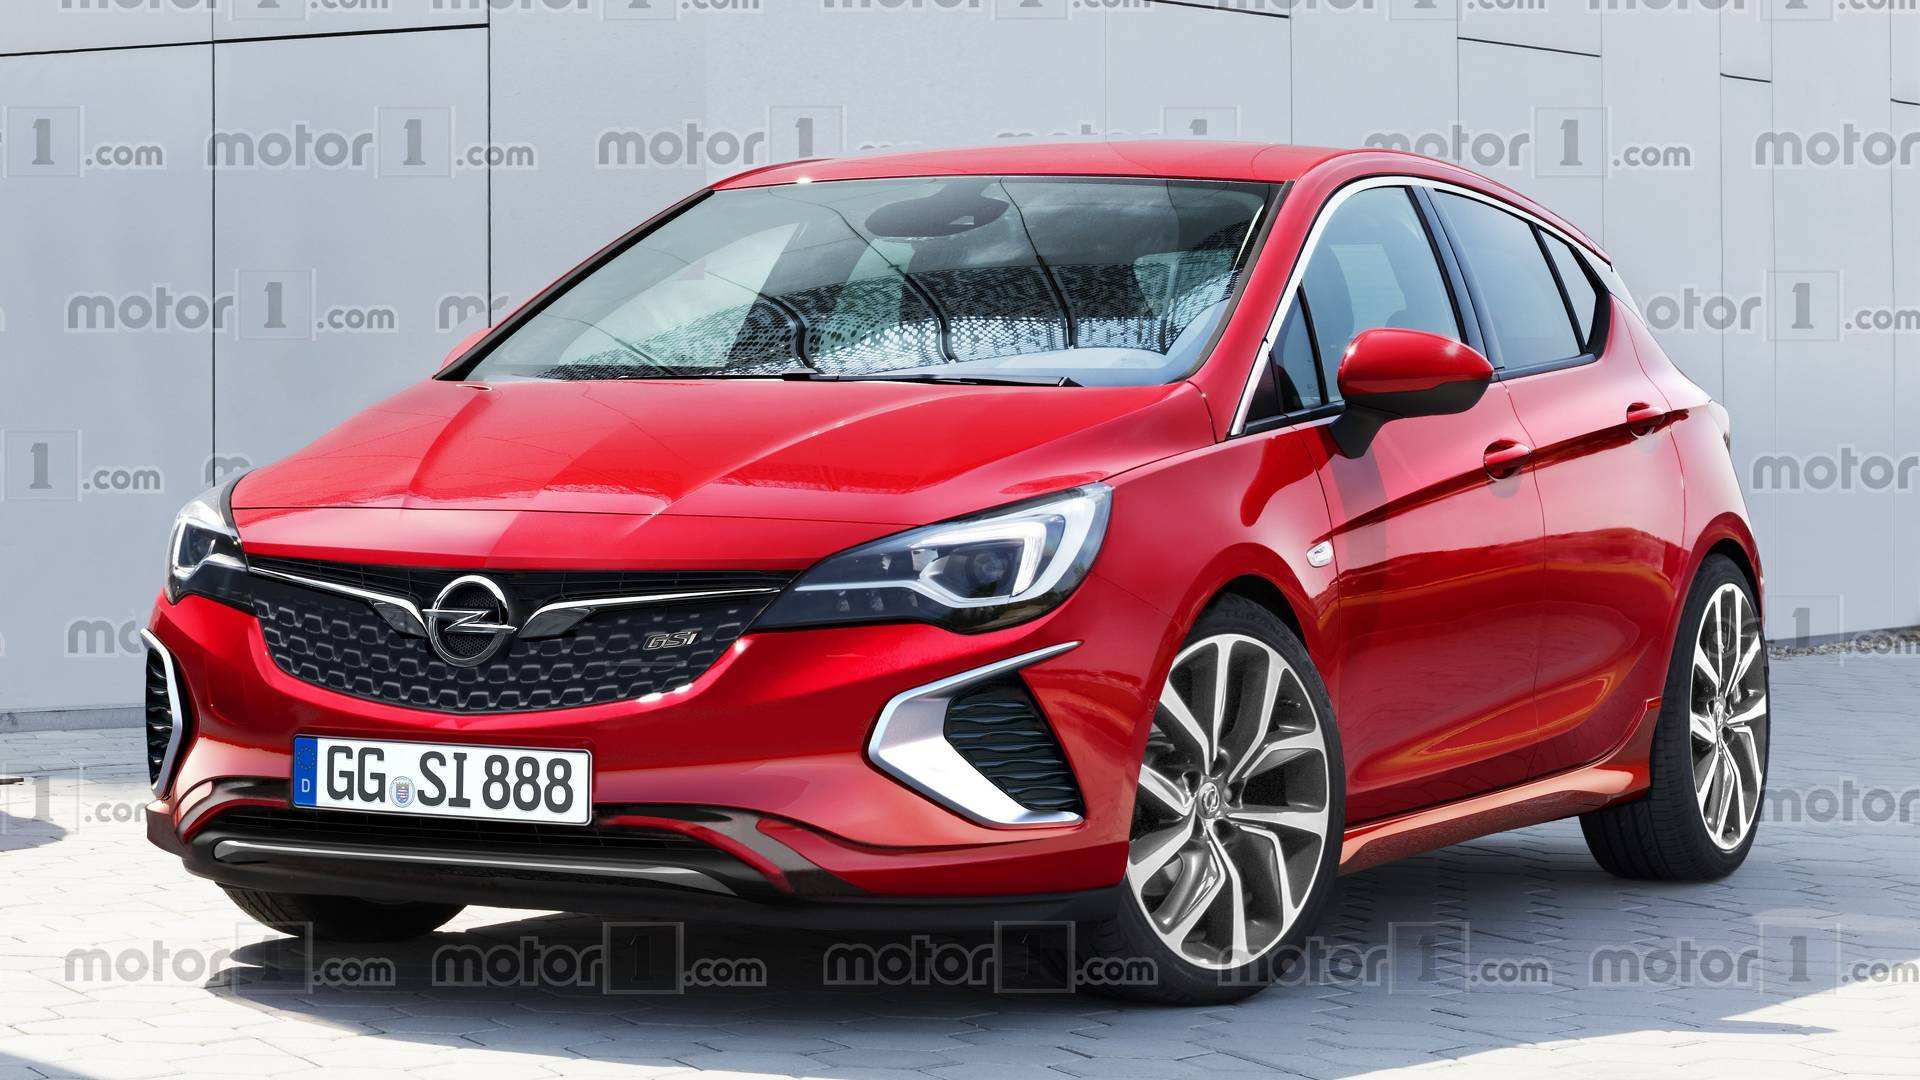 27 All New 2020 New Astra 2018 Specs with 2020 New Astra 2018